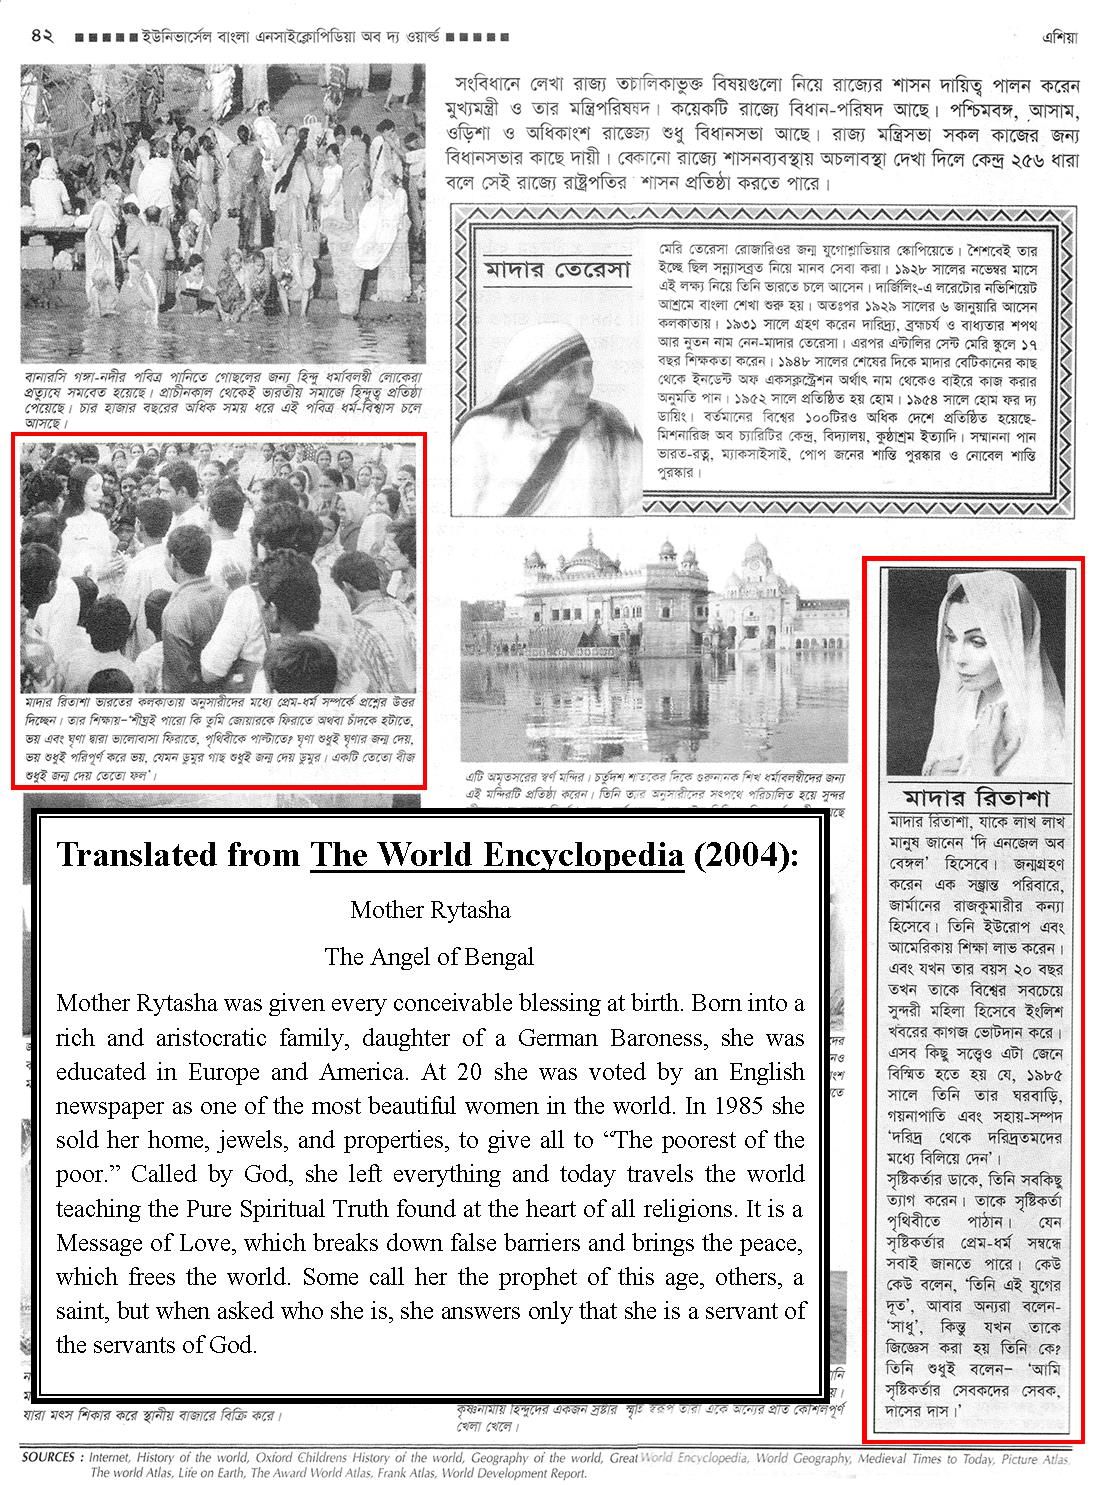 Mother Rytasha's biography in the Universal Encyclopedia of the World